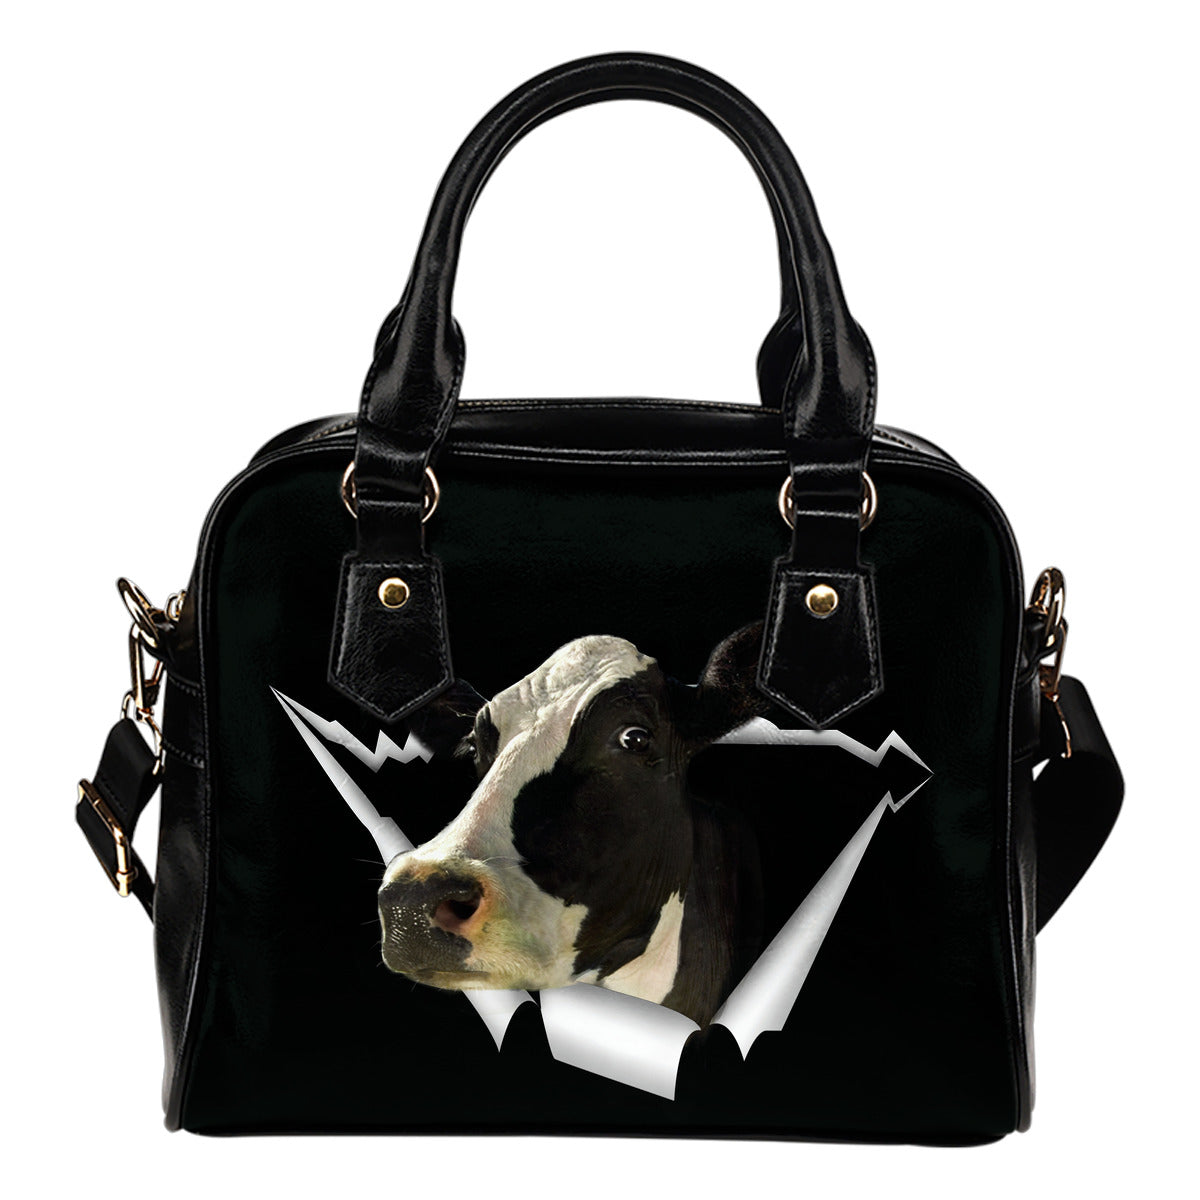 COW HOLE SHOULDER HANDBAG